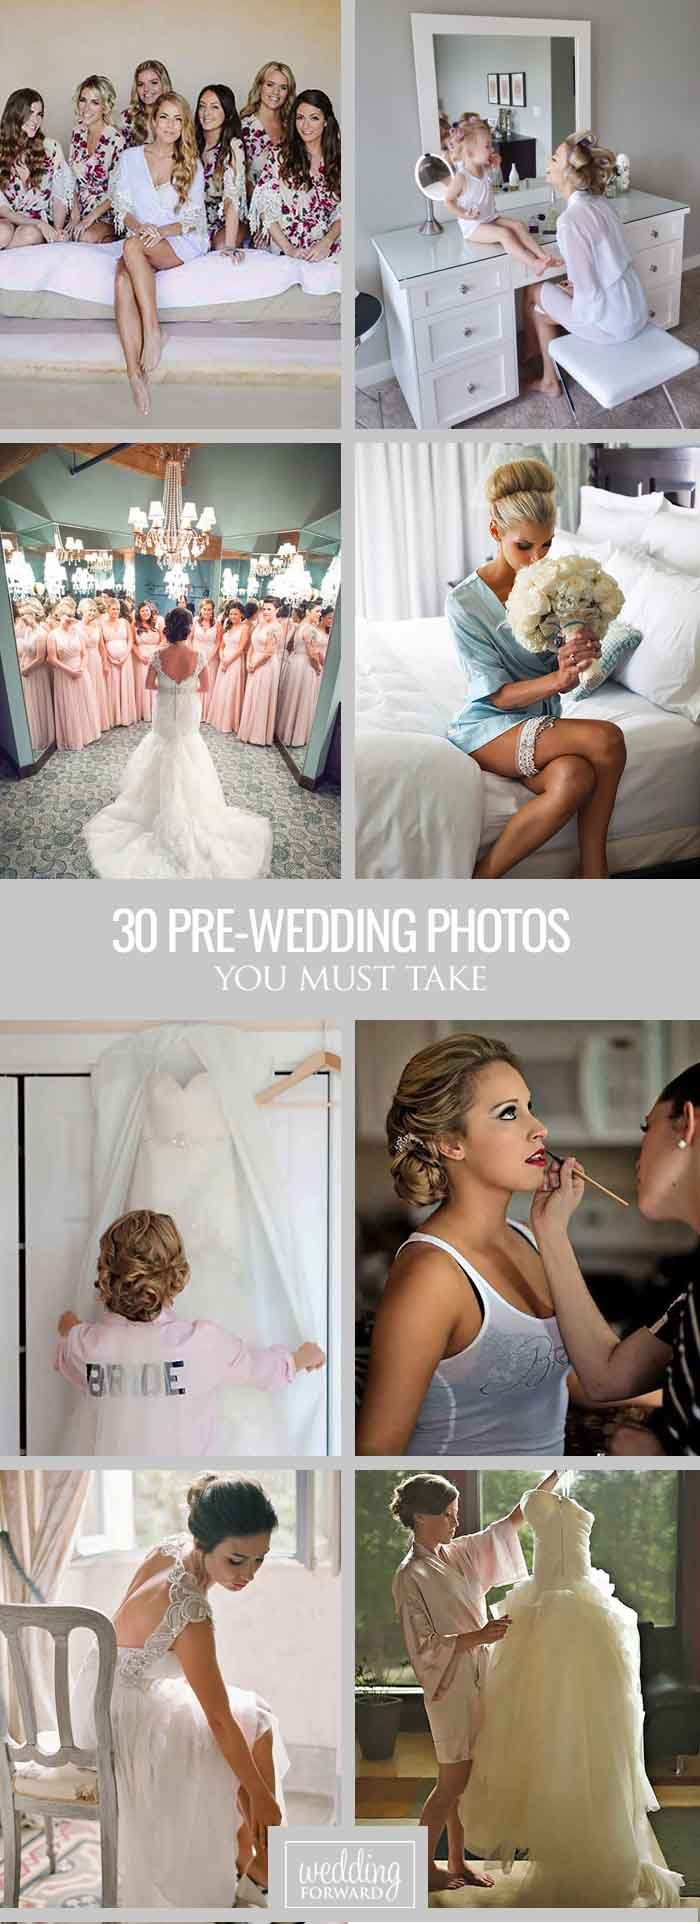 30 Must Take Pre-Wedding Photos ❤ In our pre-wedding photos we will give you some inspiration! See more: www.weddingforward.com/pre-wedding-photos/ #weddings #photo. @HannahCateH